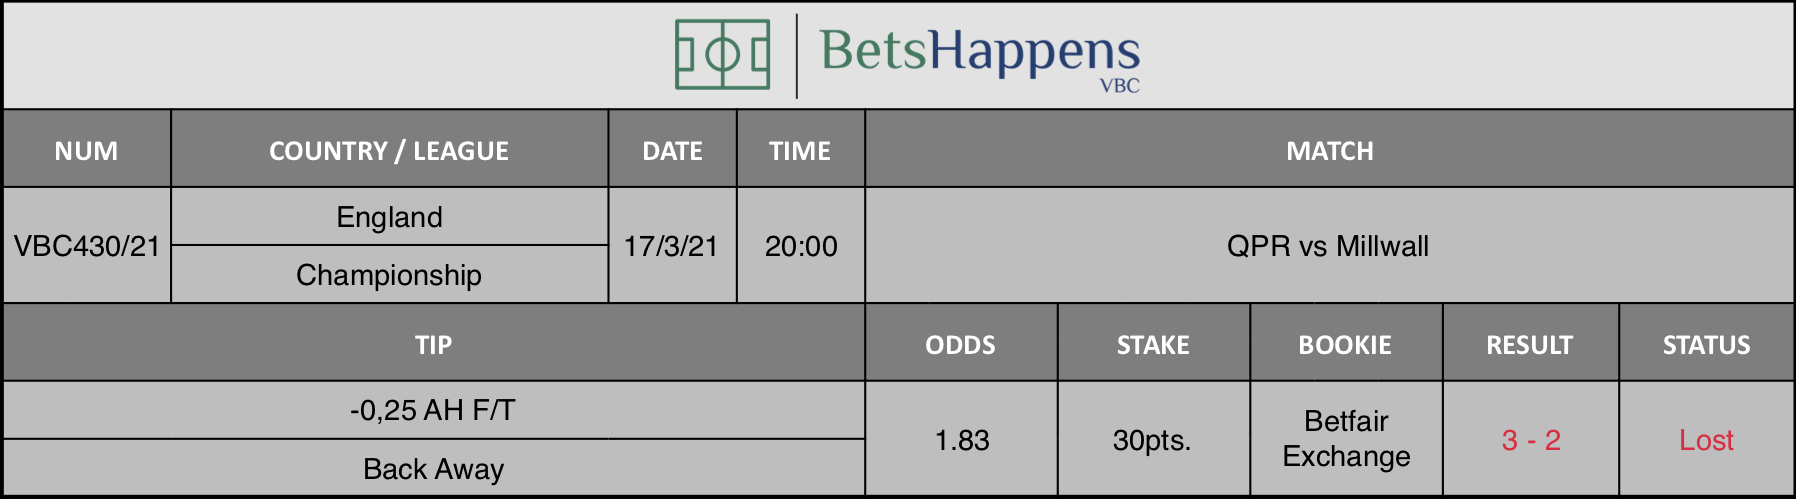 Results of our tip for the QPR vs Millwall match where -0,25 AH F/T Back Away is recommended.